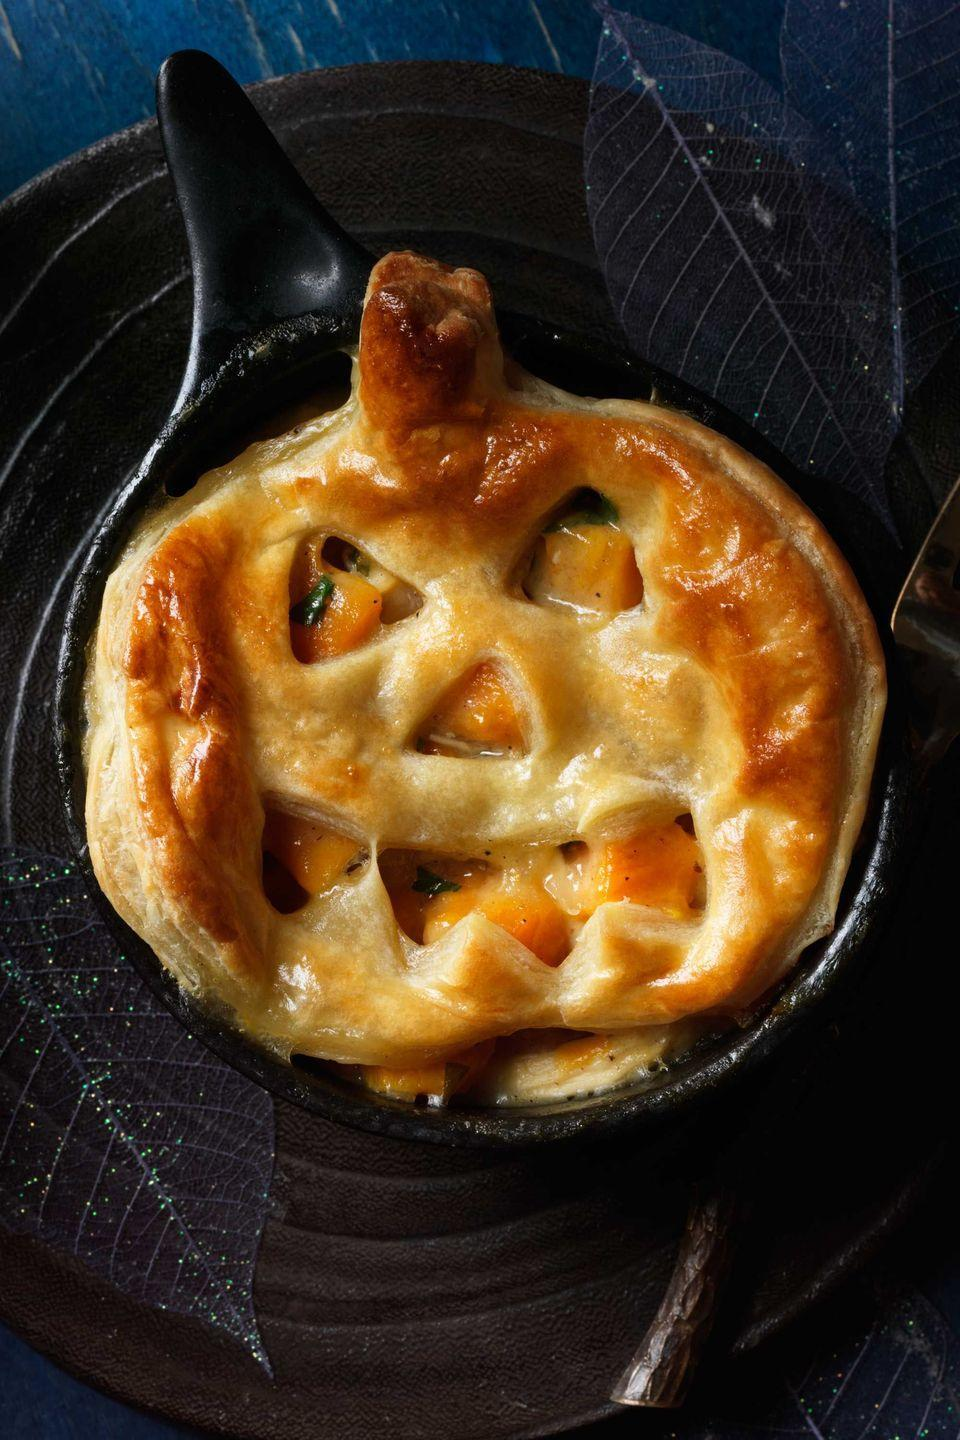 """<p>A frightfully tasty main course for Halloween, this <a href=""""https://www.womansday.com/food-recipes/food-drinks/g1969/sweet-potato-recipes/"""" rel=""""nofollow noopener"""" target=""""_blank"""" data-ylk=""""slk:sweet potato dish"""" class=""""link rapid-noclick-resp"""">sweet potato dish</a> is also a comforting choice throughout winter. Serve it in ramekins as shown, or as one big pie with uncut puff pastry on top, baking until it turns golden.</p><p><strong><em><a href=""""https://www.womansday.com/food-recipes/food-drinks/recipes/a11925/jack-o-lantern-chicken-sweet-potato-potpies-recipe-123644/"""" rel=""""nofollow noopener"""" target=""""_blank"""" data-ylk=""""slk:Get the Jack-o'-Lantern Pot Pies recipe."""" class=""""link rapid-noclick-resp"""">Get the Jack-o'-Lantern Pot Pies recipe. </a></em></strong> </p>"""